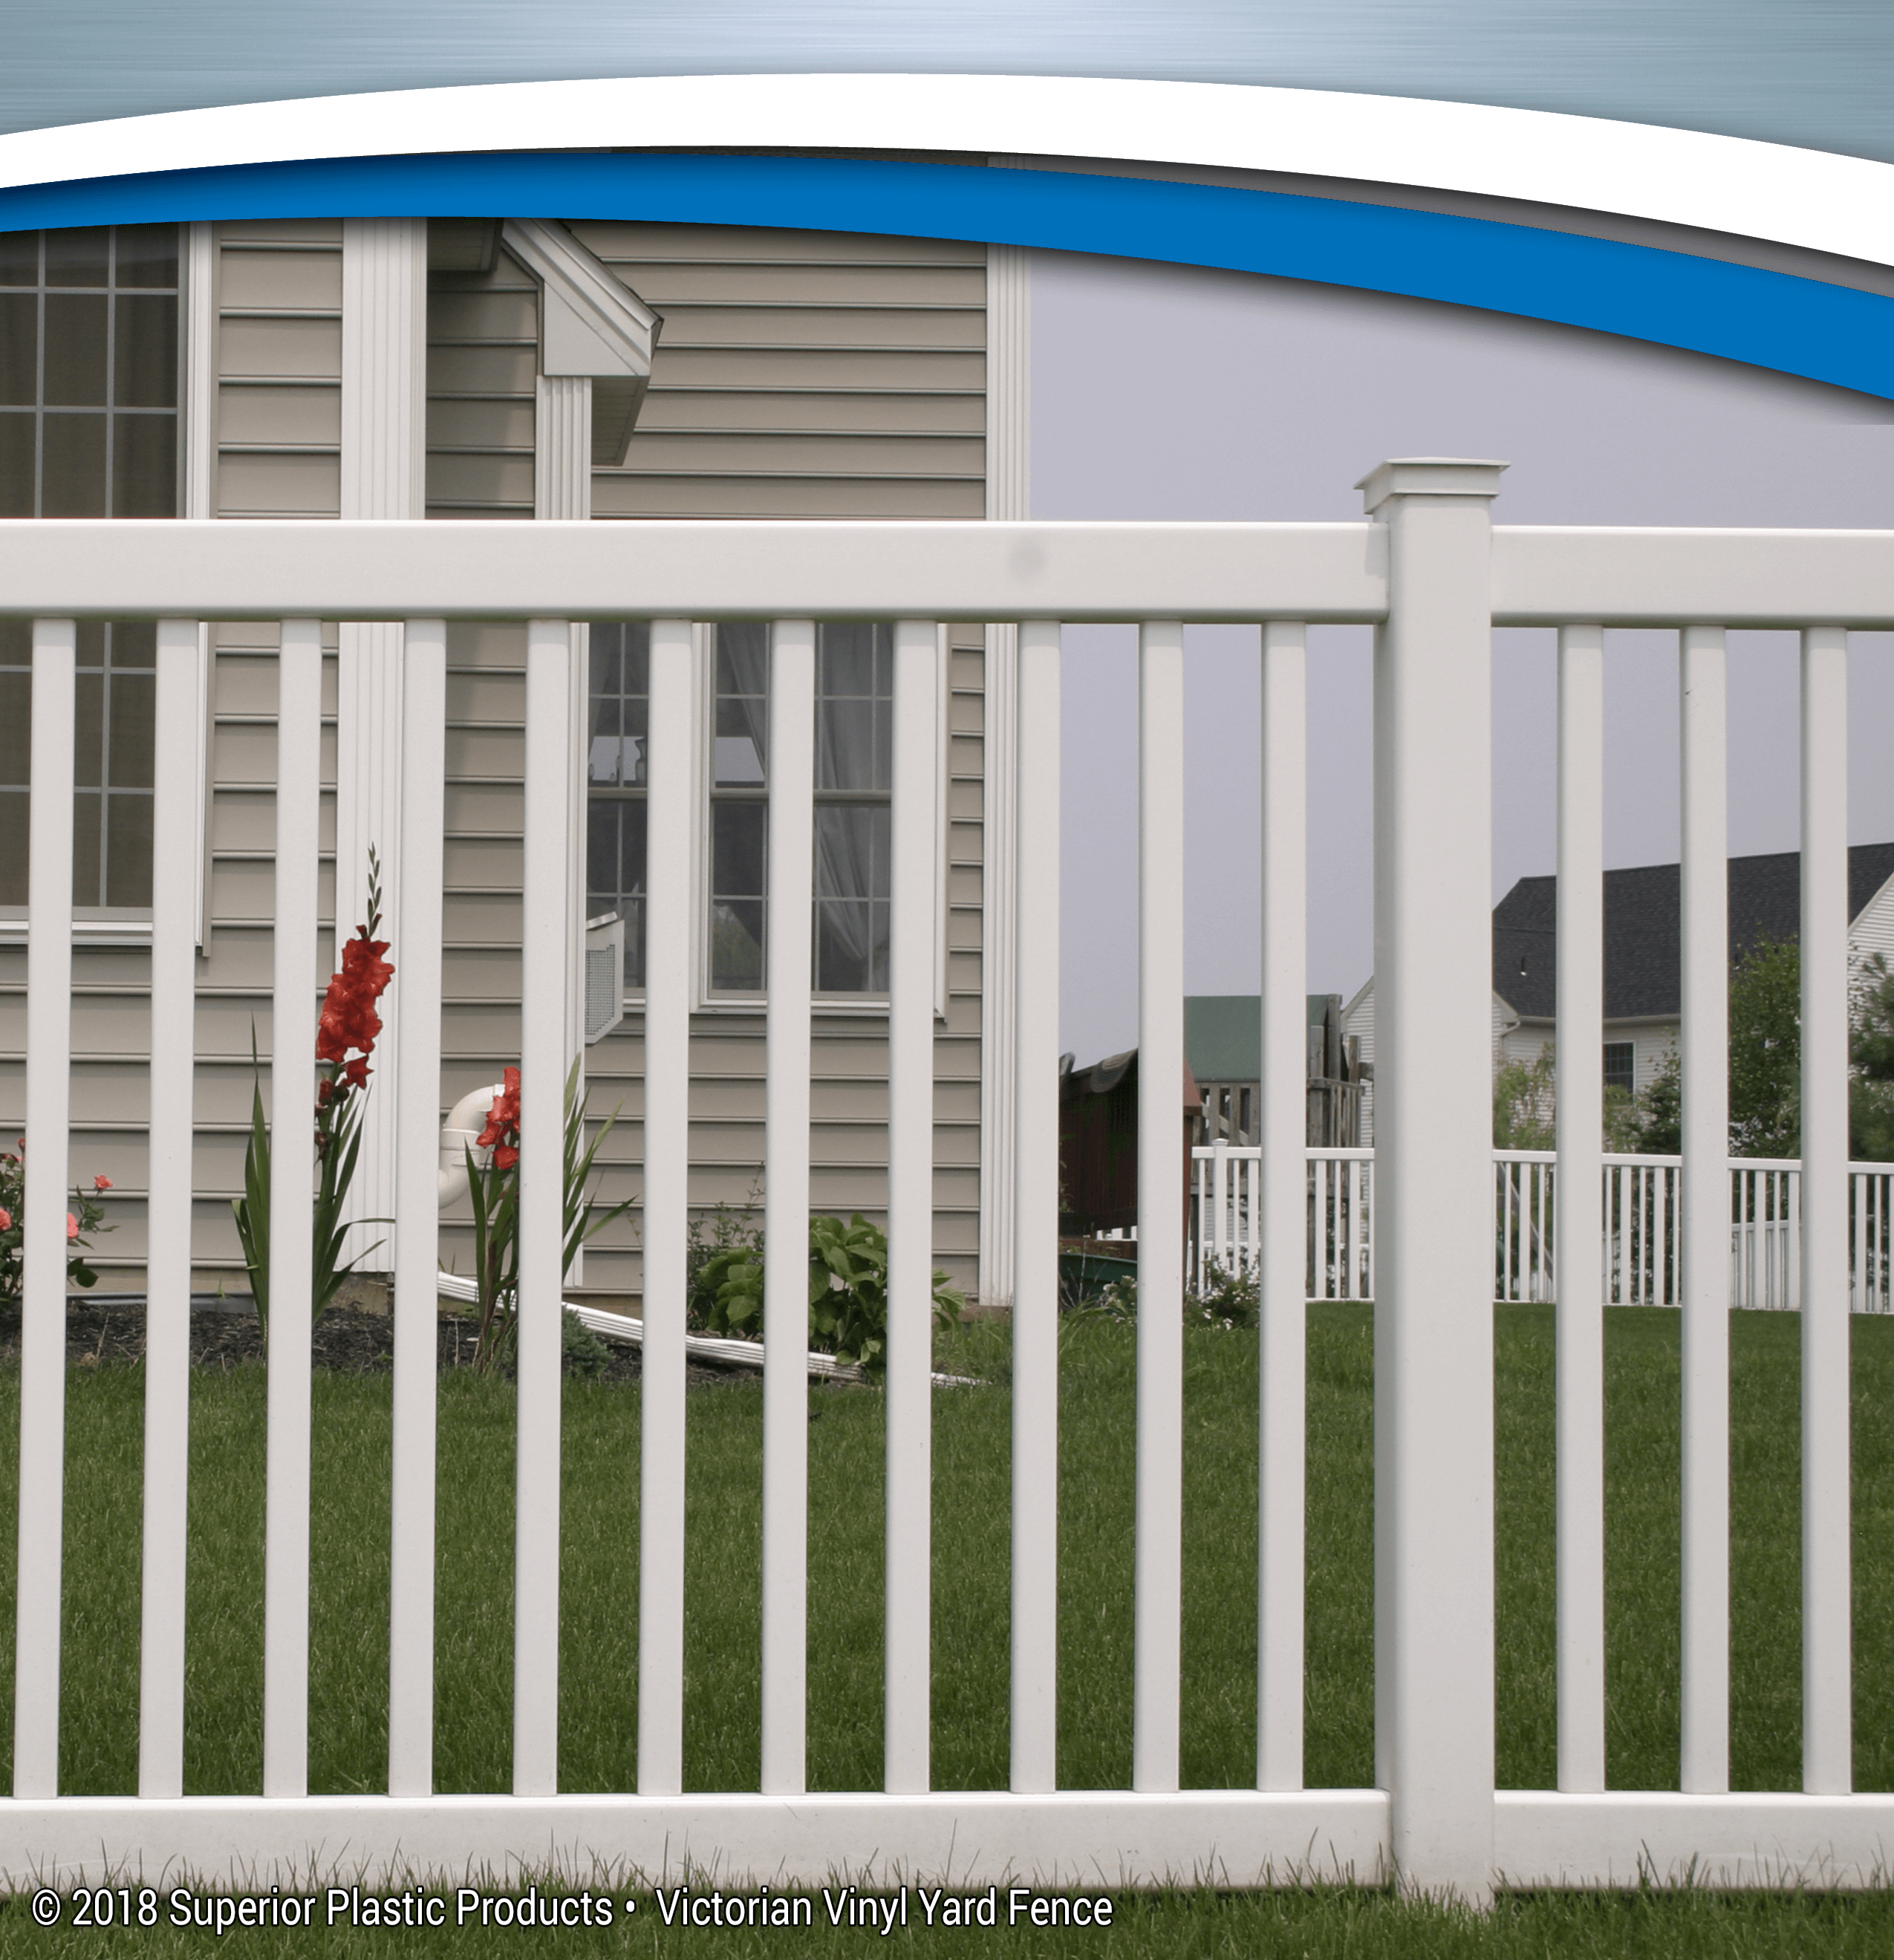 Victorian Vinyl Yard Fence - Superior Plastic Products